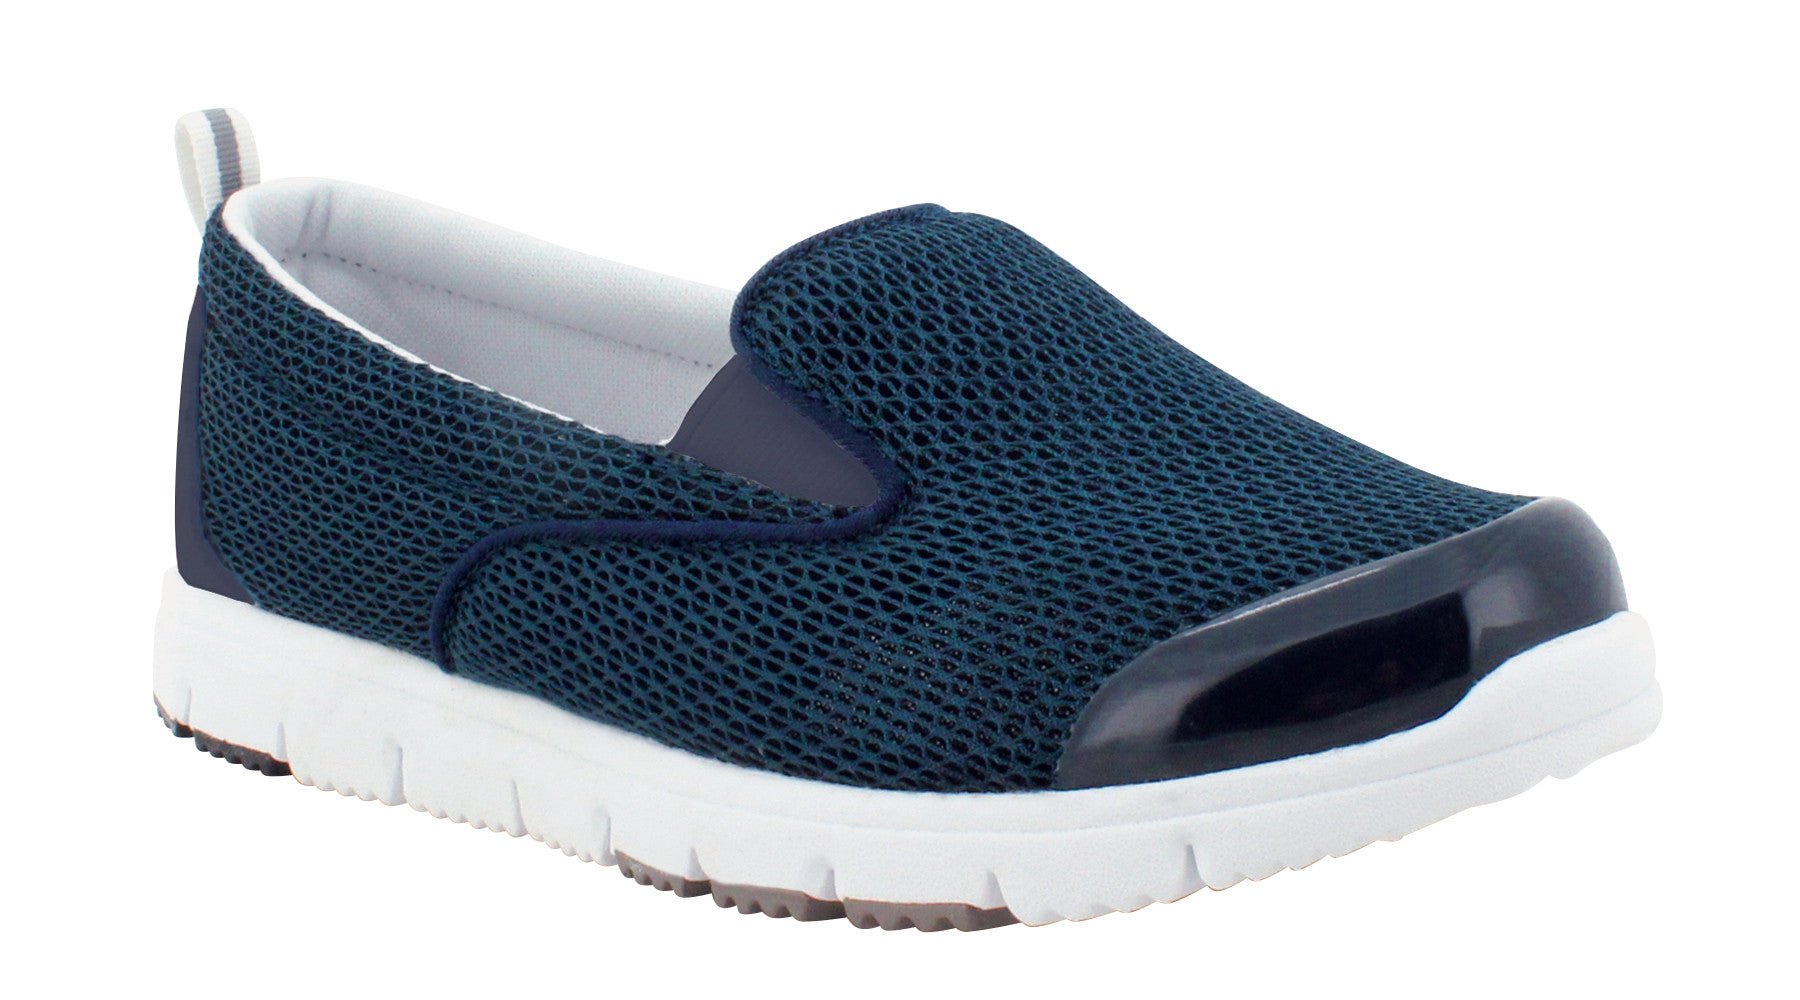 Propet TravelWalker Slip-On(Women's) -Black Mesh Cheap Extremely High Quality Clearance Really xjBiEP